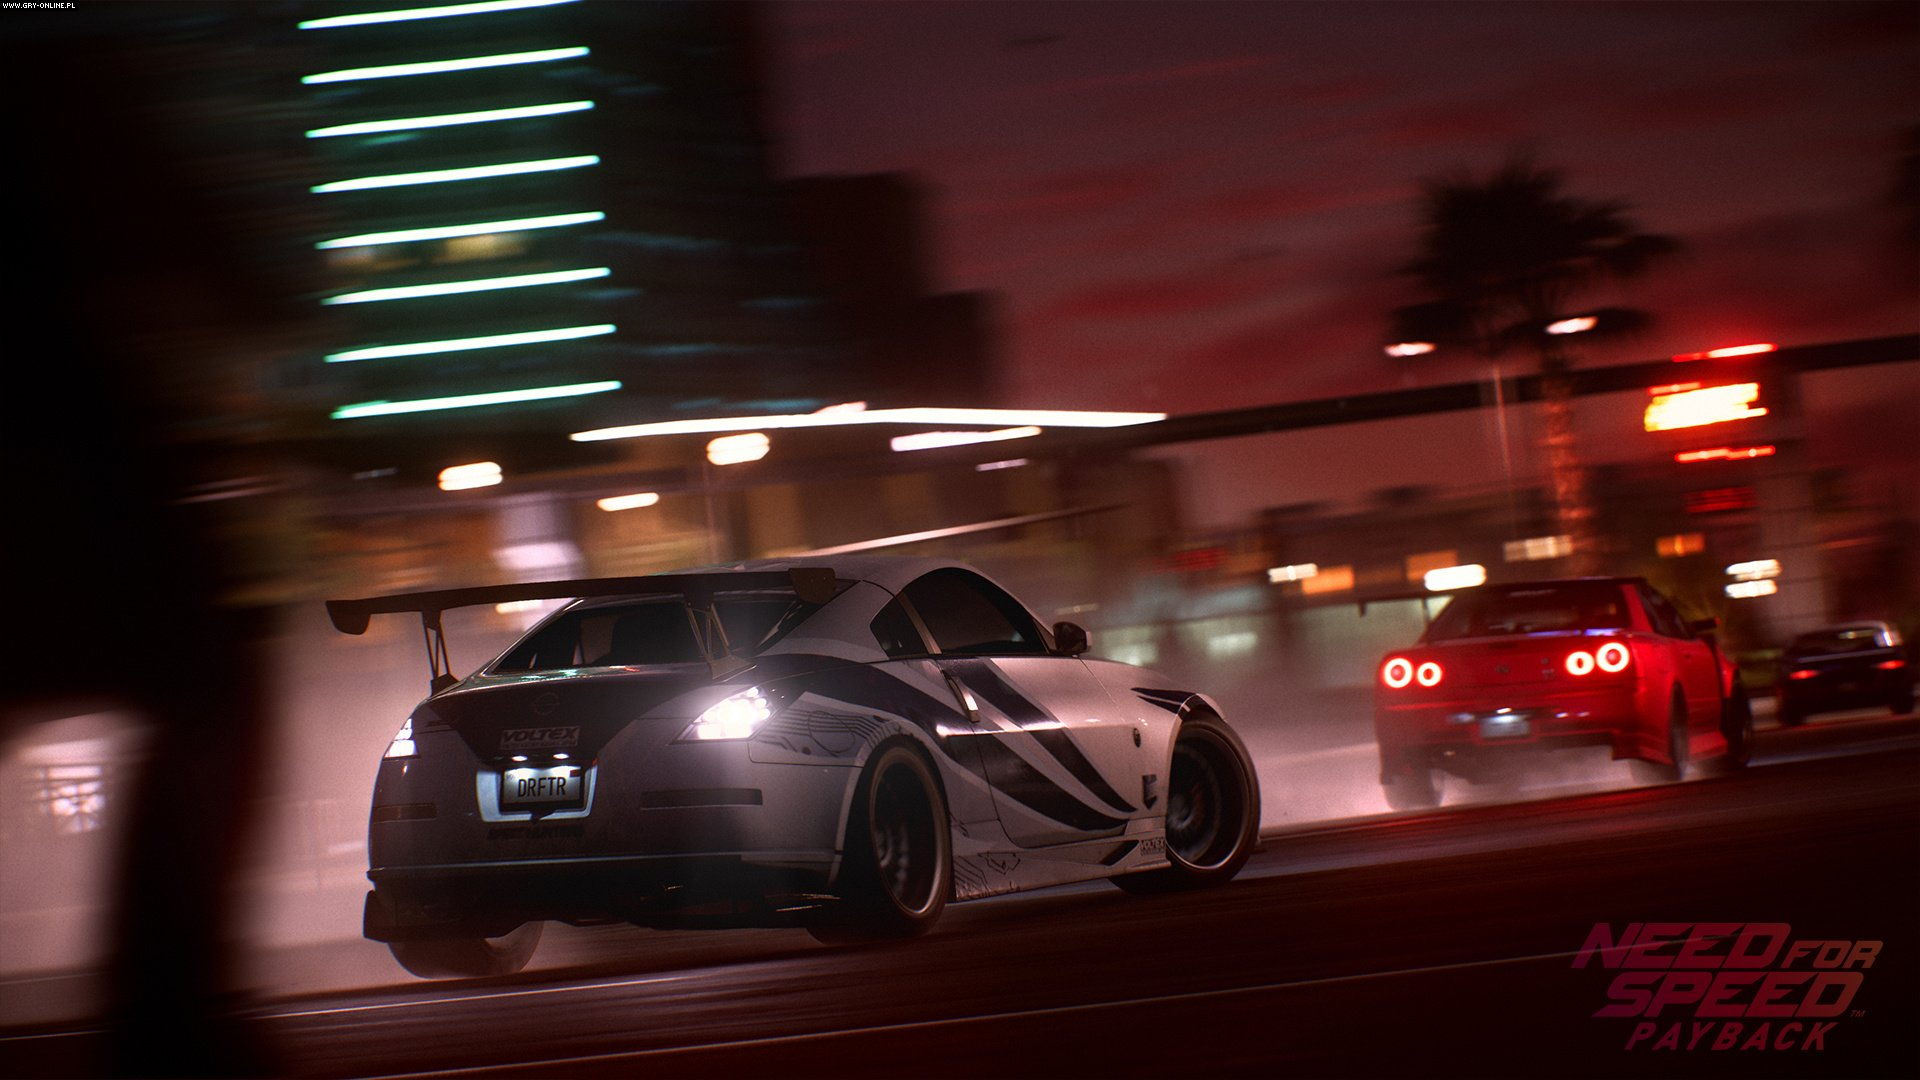 Need for Speed: Payback PC, PS4, XONE Games Image 7/11, Ghost Games, Electronic Arts Inc.